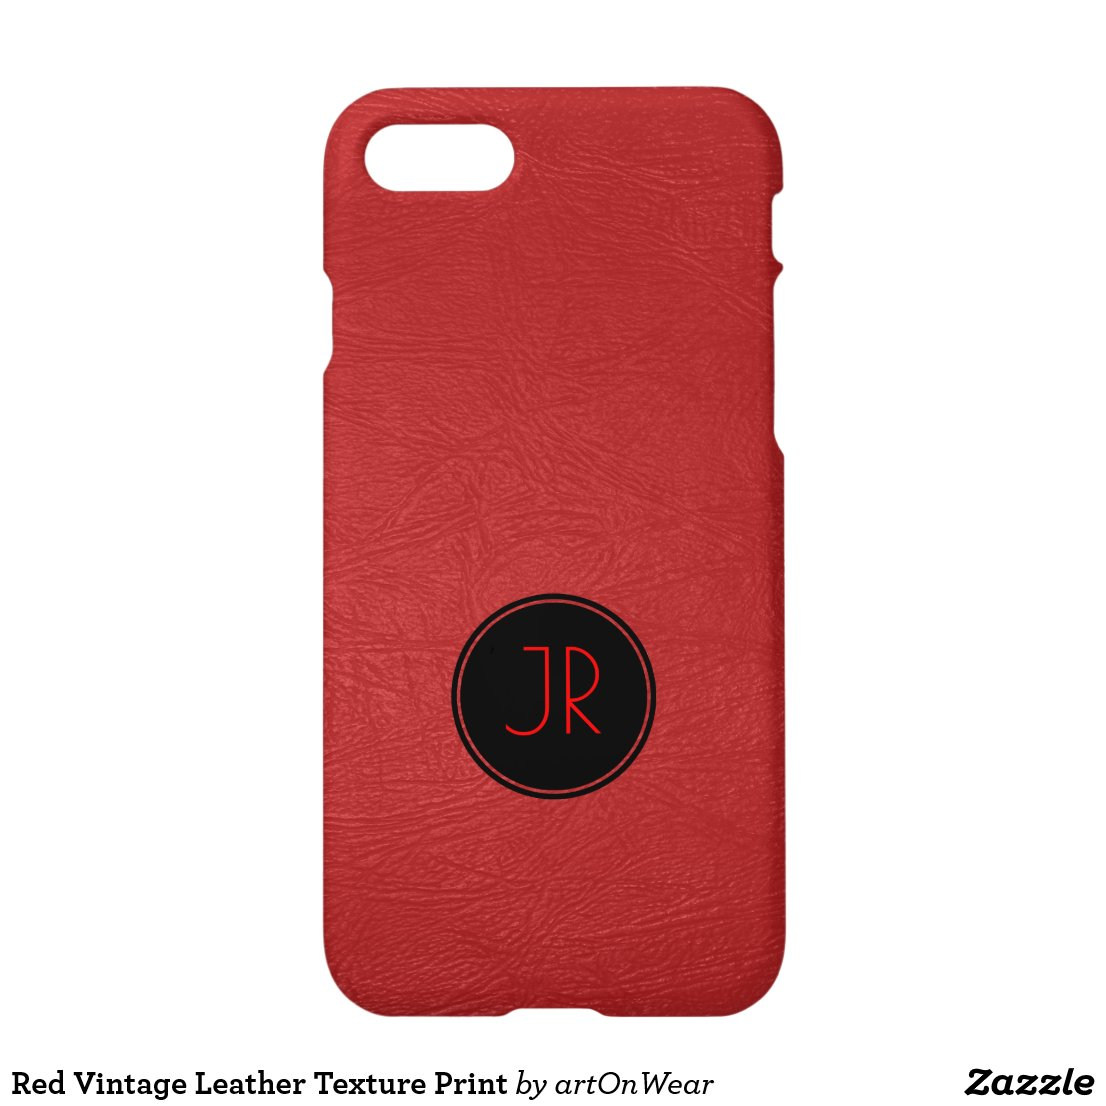 Red Vintage Leather Texture Print